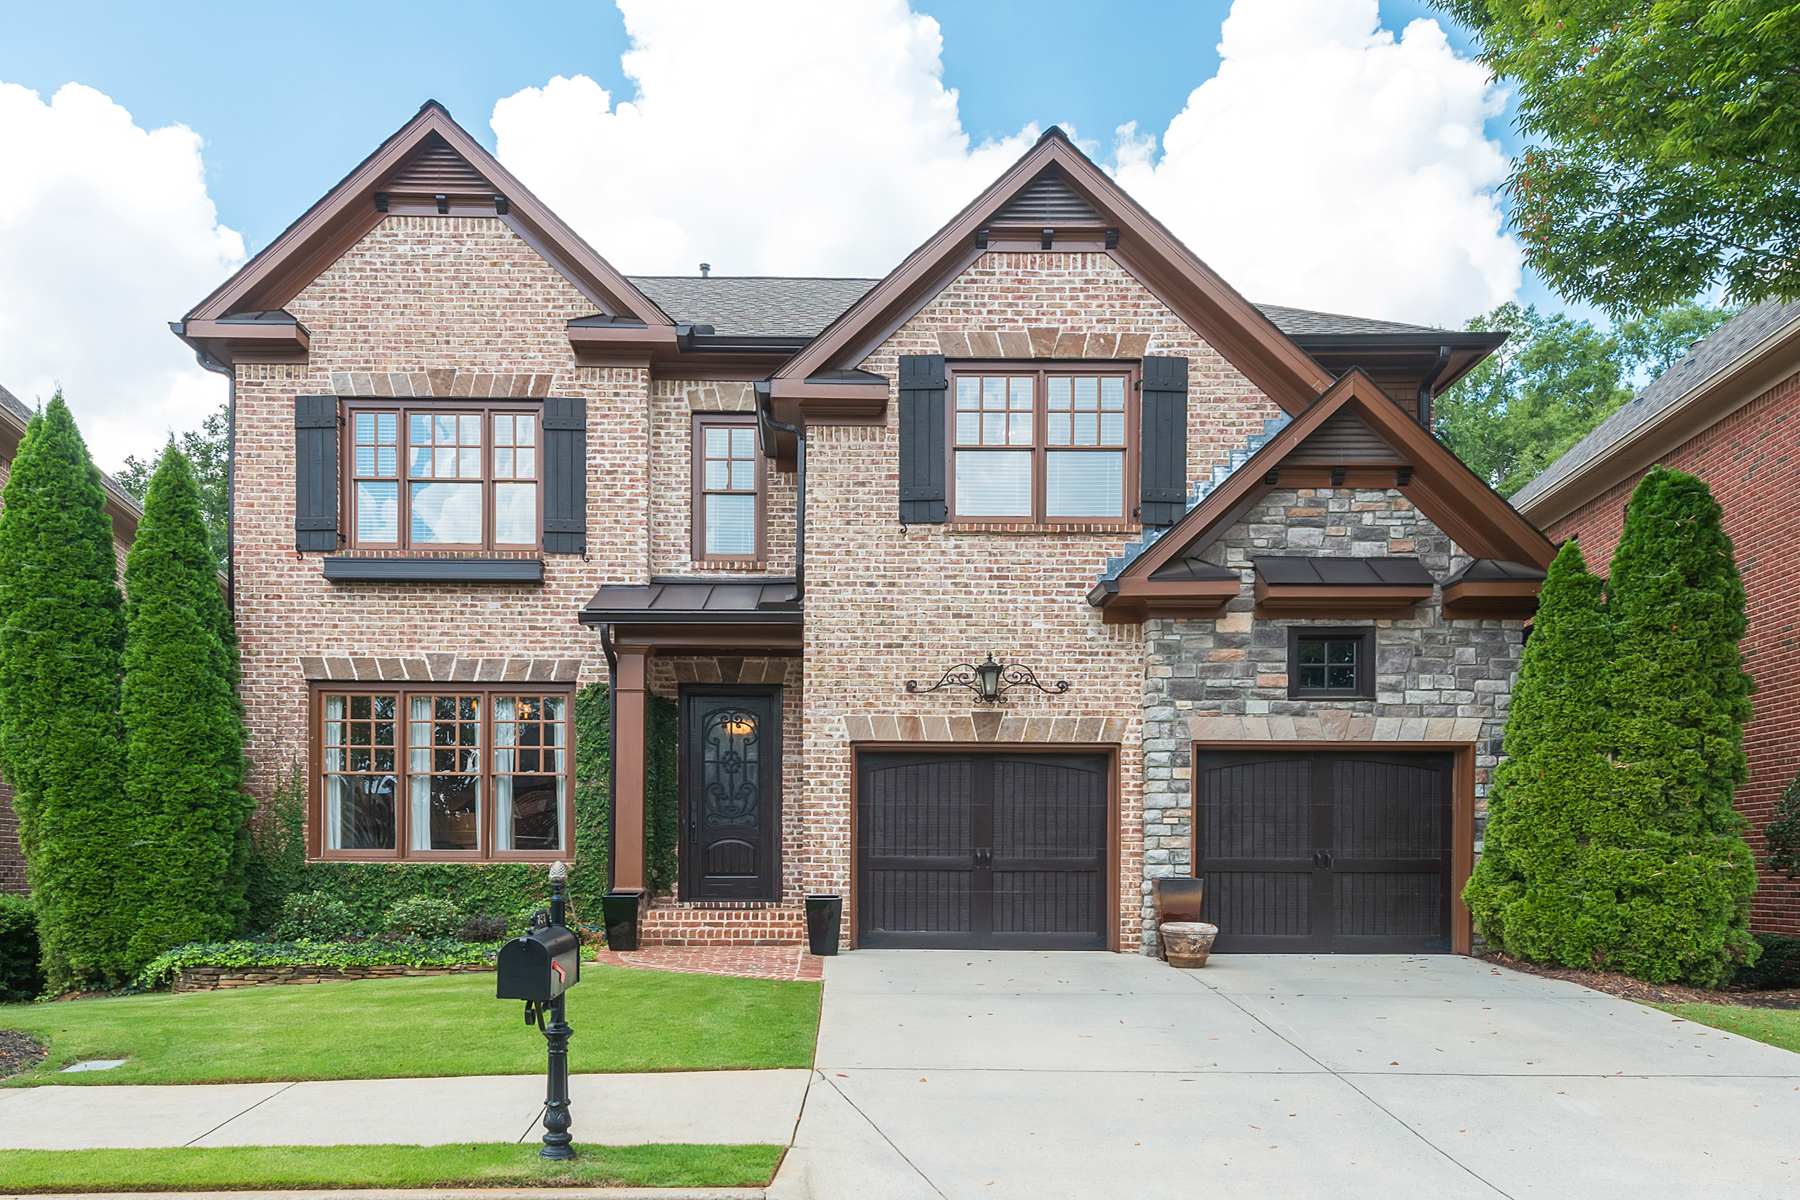 Single Family Home for Sale at Stunning Master-On-Main That Backs Up To The Alpharetta Greenway 230 Society Street Alpharetta, Georgia 30022 United States